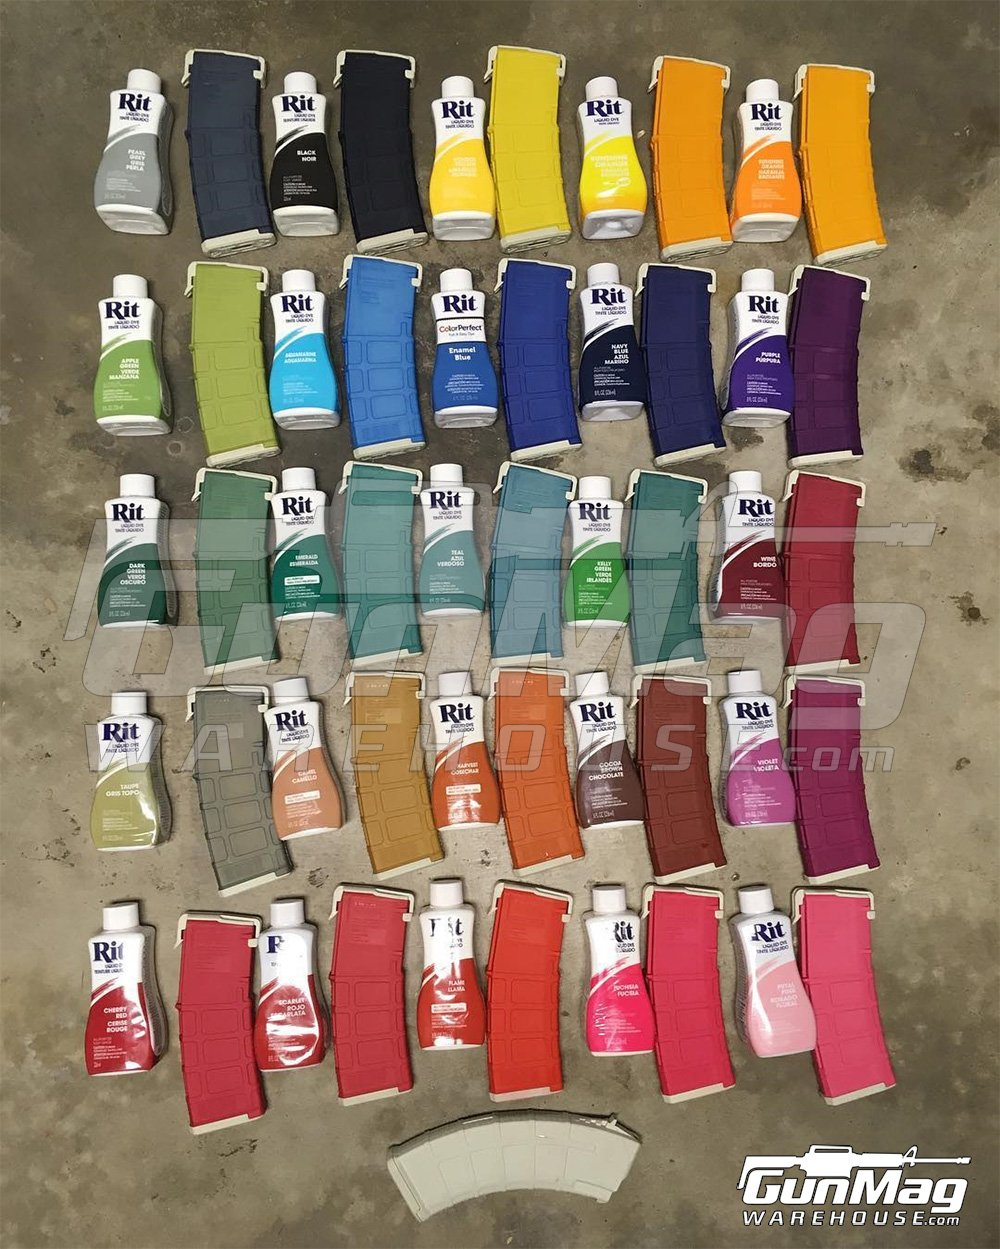 Rit Dye Color Chart as displayed on PMAGs